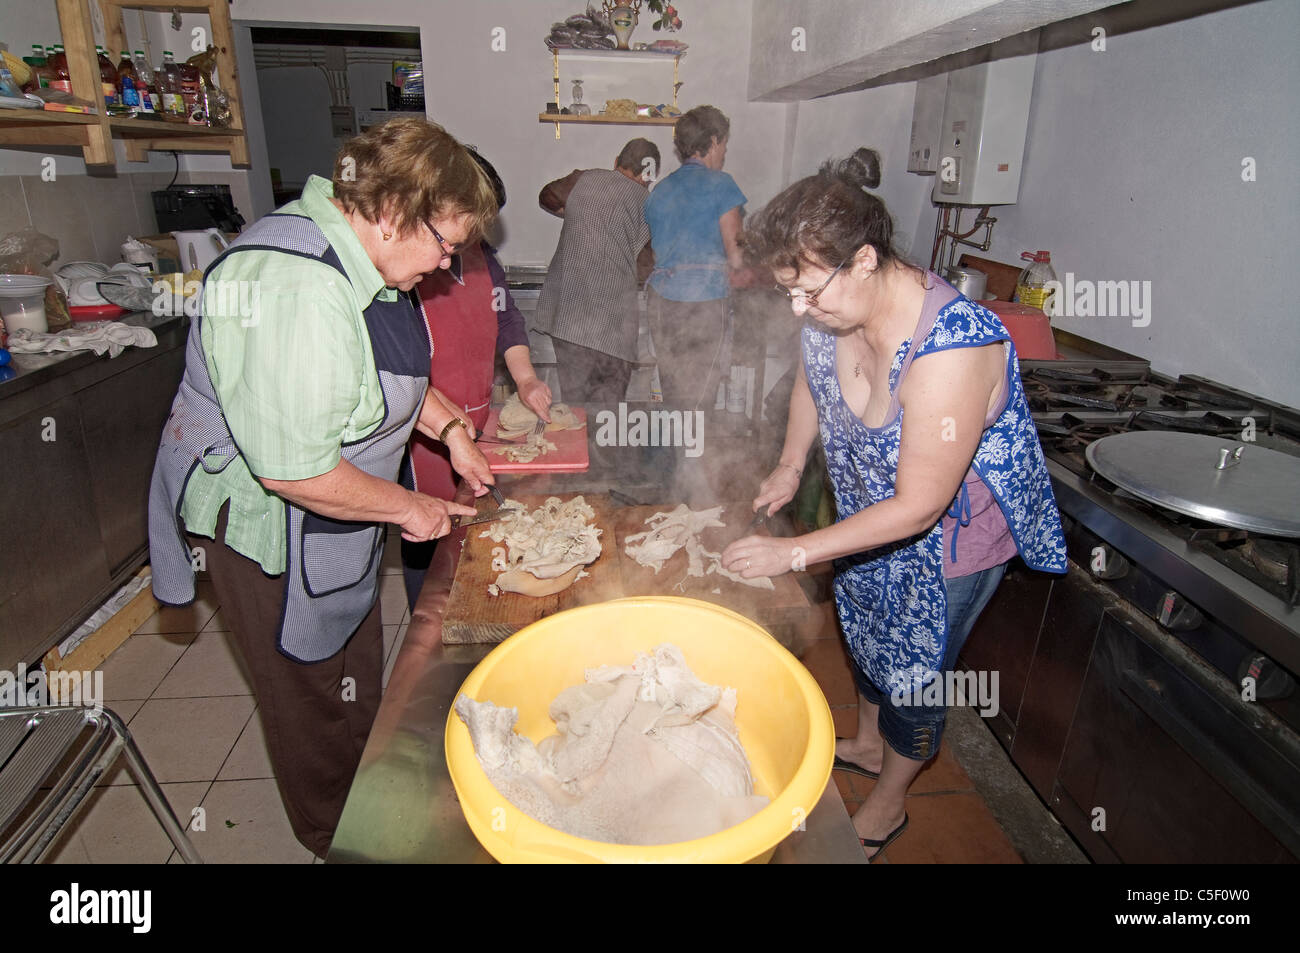 Holy ghost festivities at Flores island. Preparation of food. - Stock Image